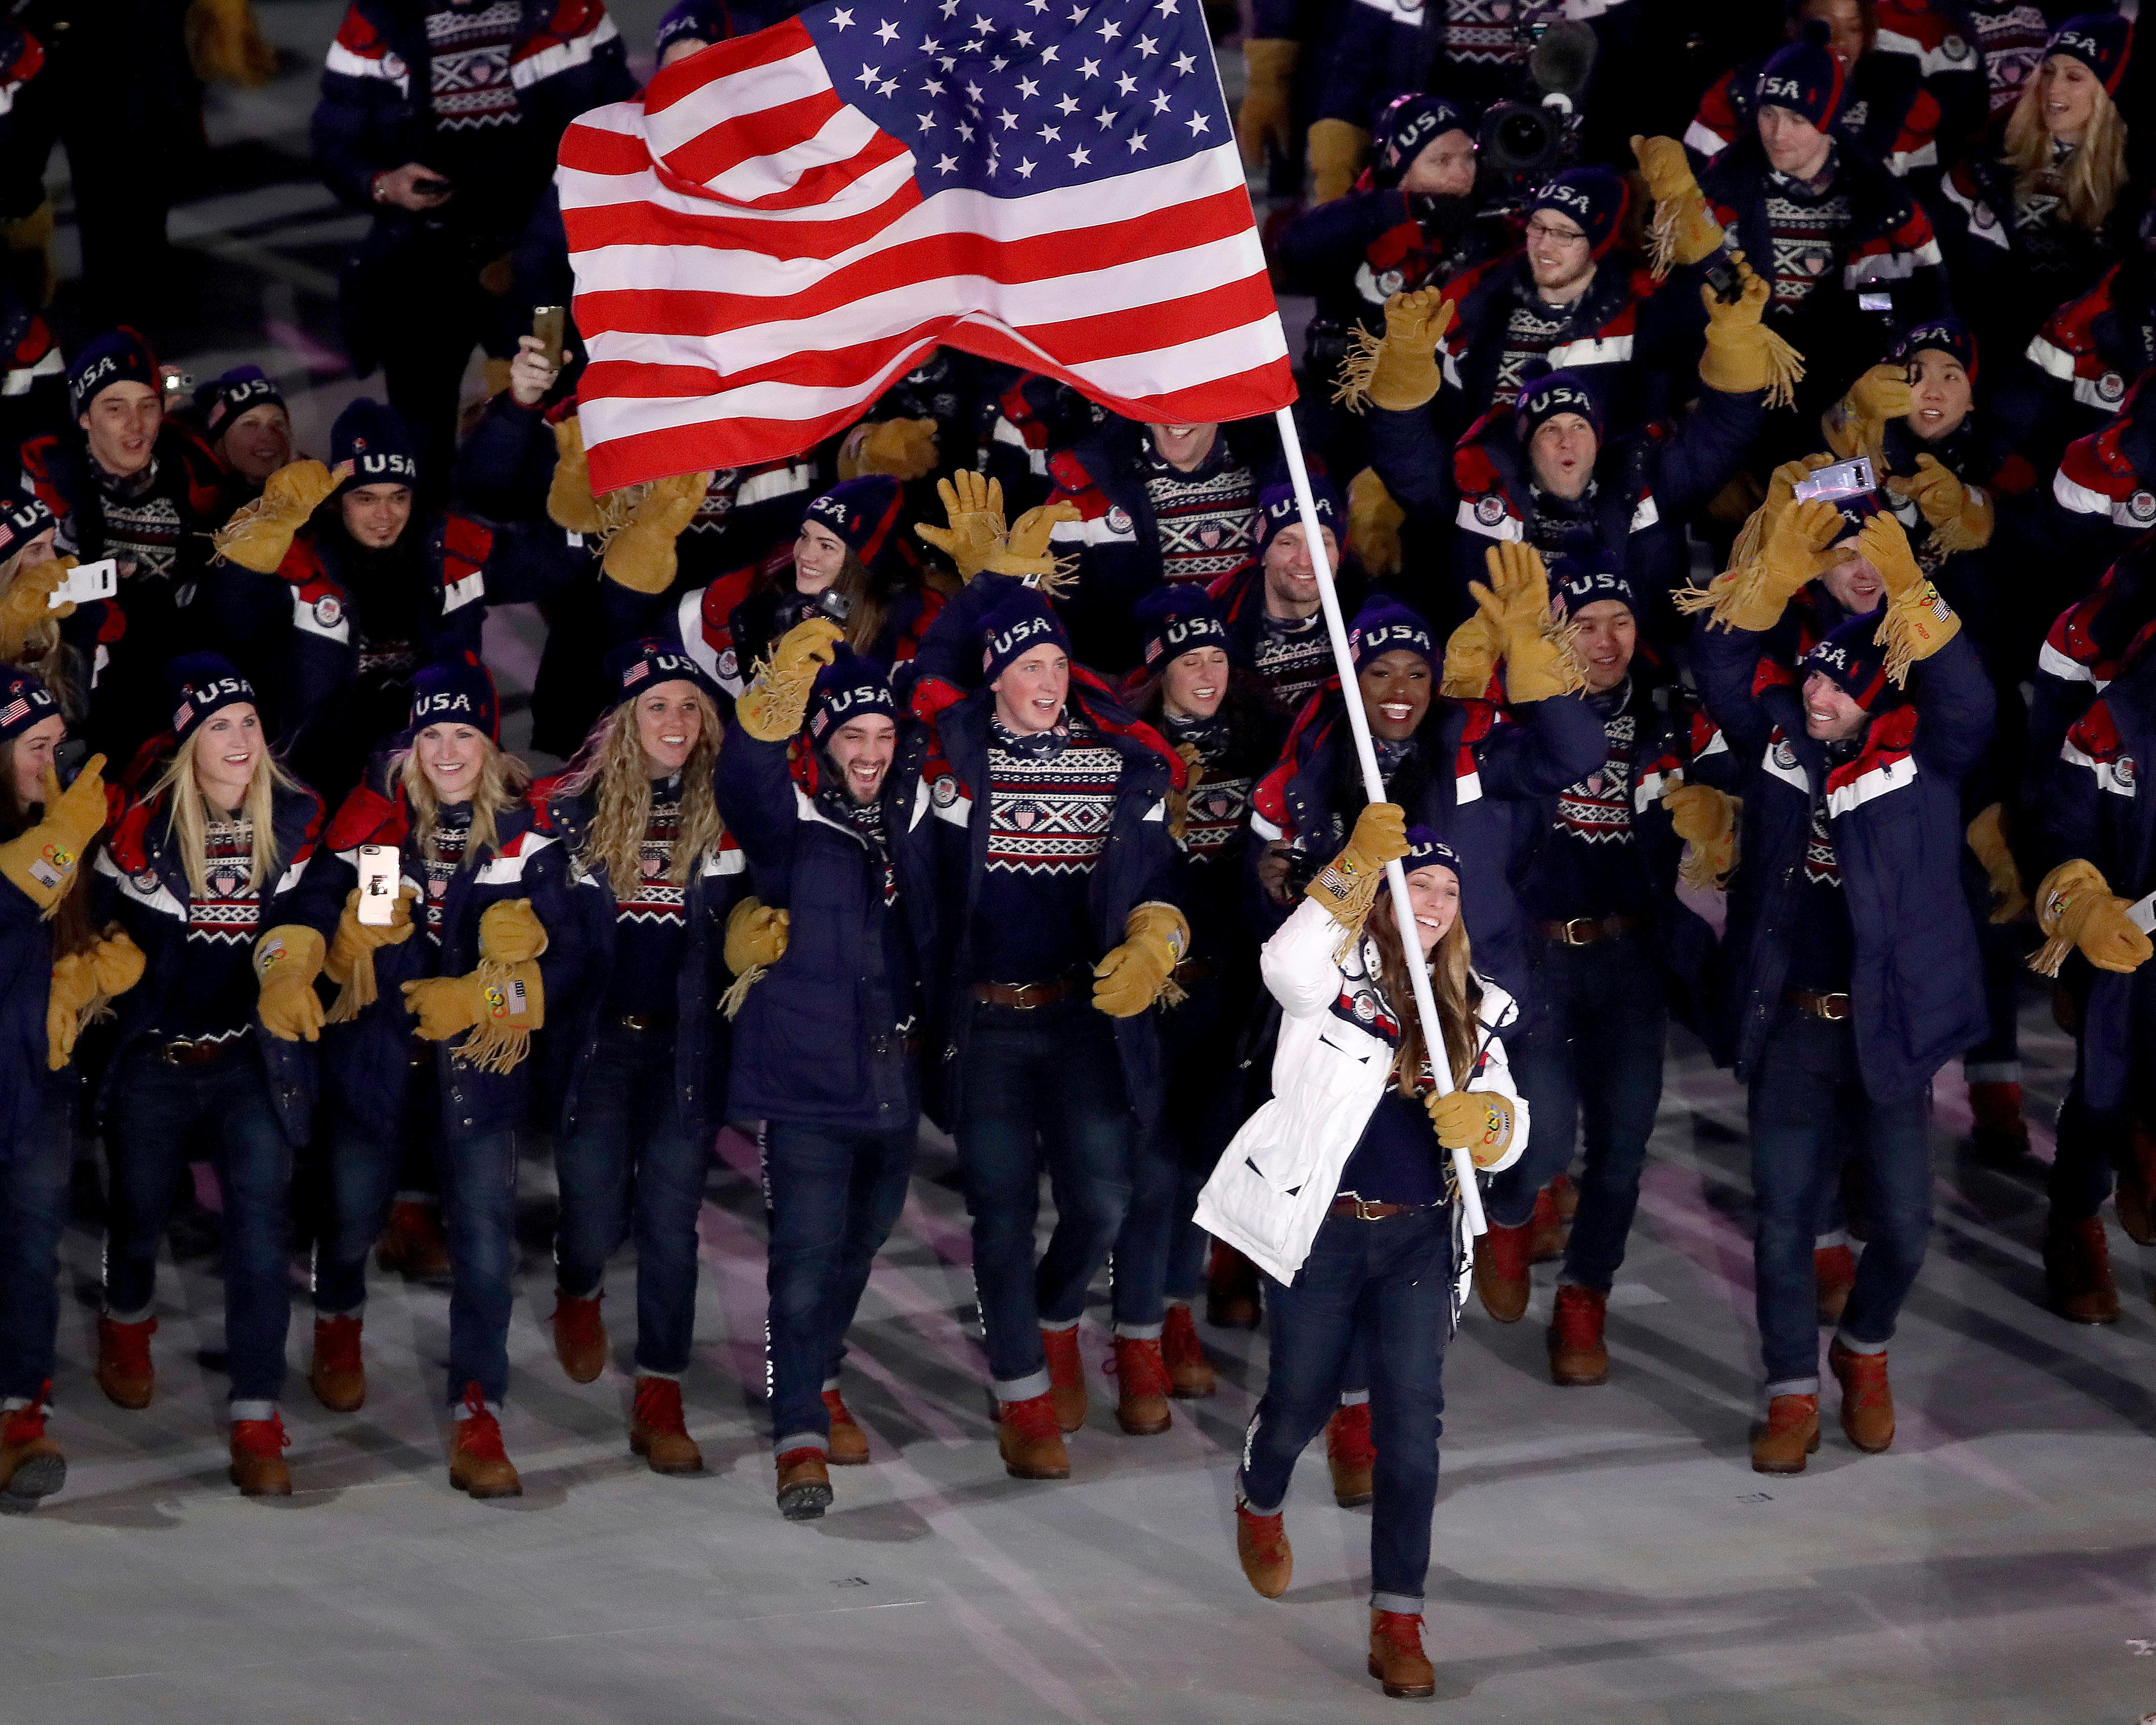 Erin Hamlin carries the flag of the United States during the opening ceremony of the 2018 Winter Olympics in Pyeongchang, South Korea, Friday, Feb. 9, 2018. (Sean Haffey/Pool Photo via AP)